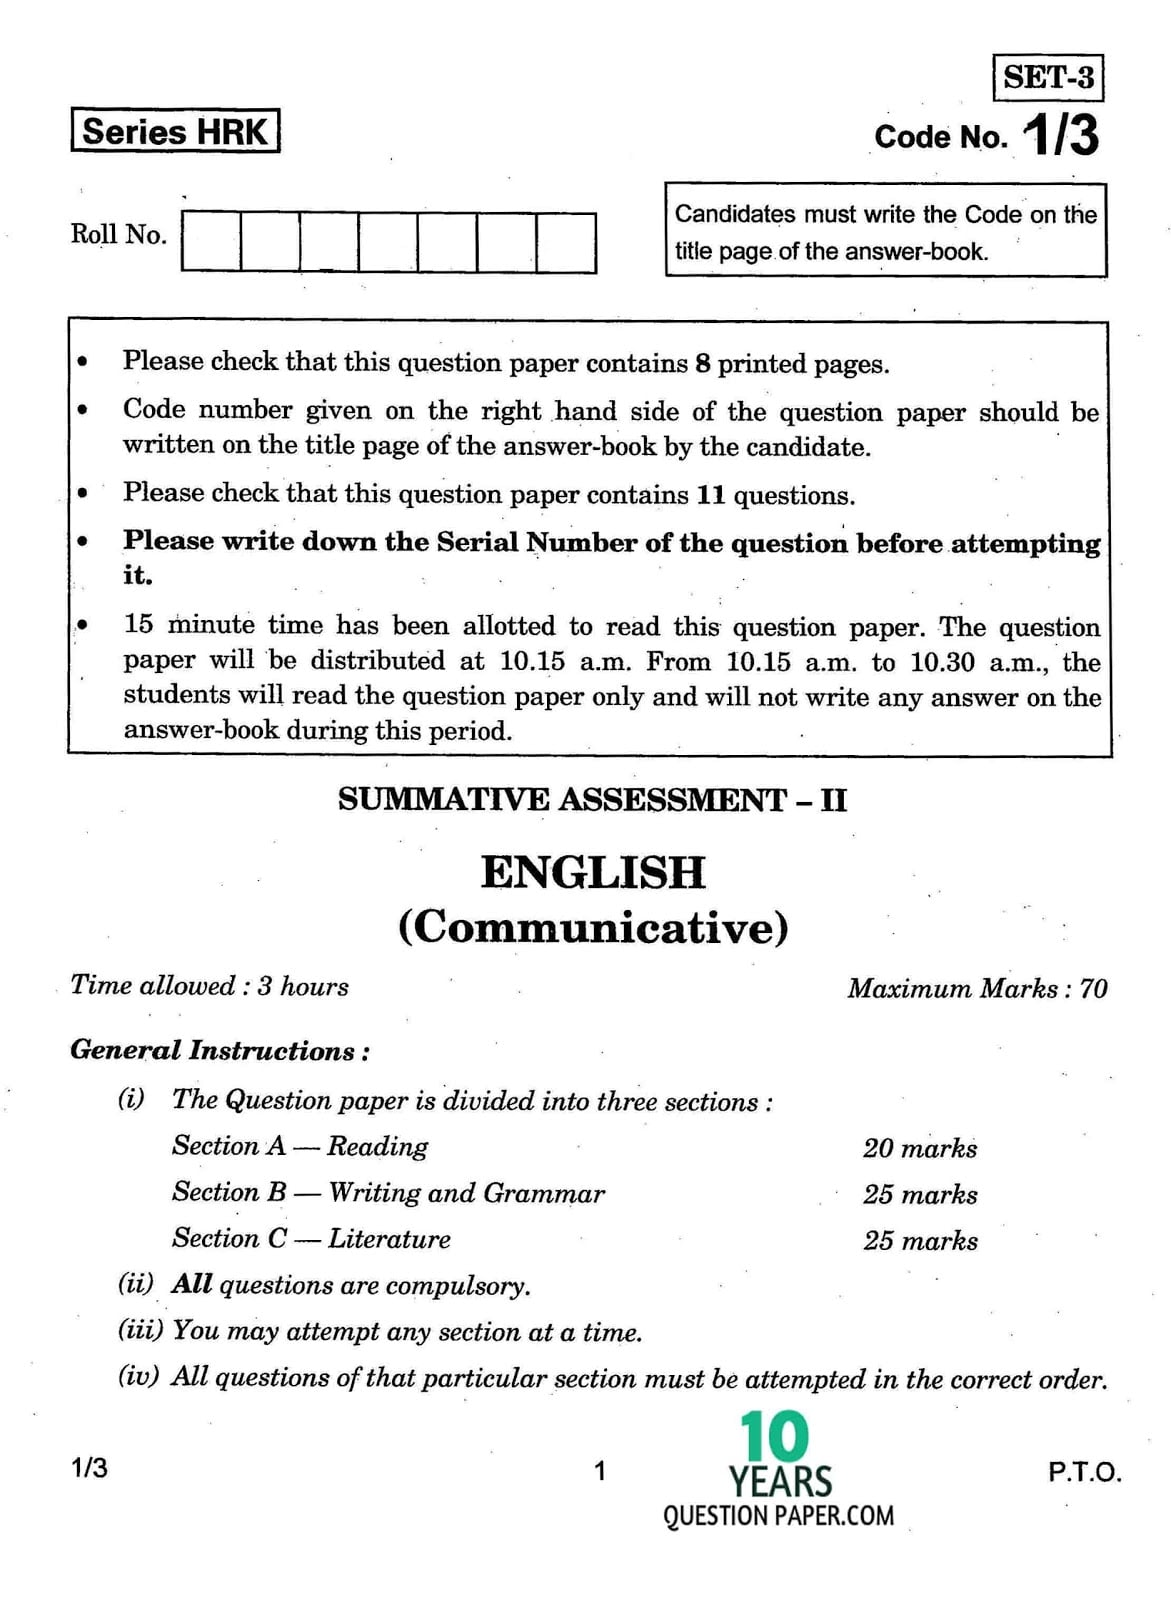 CBSE Class 10 English Communicative 2017 Question Paper